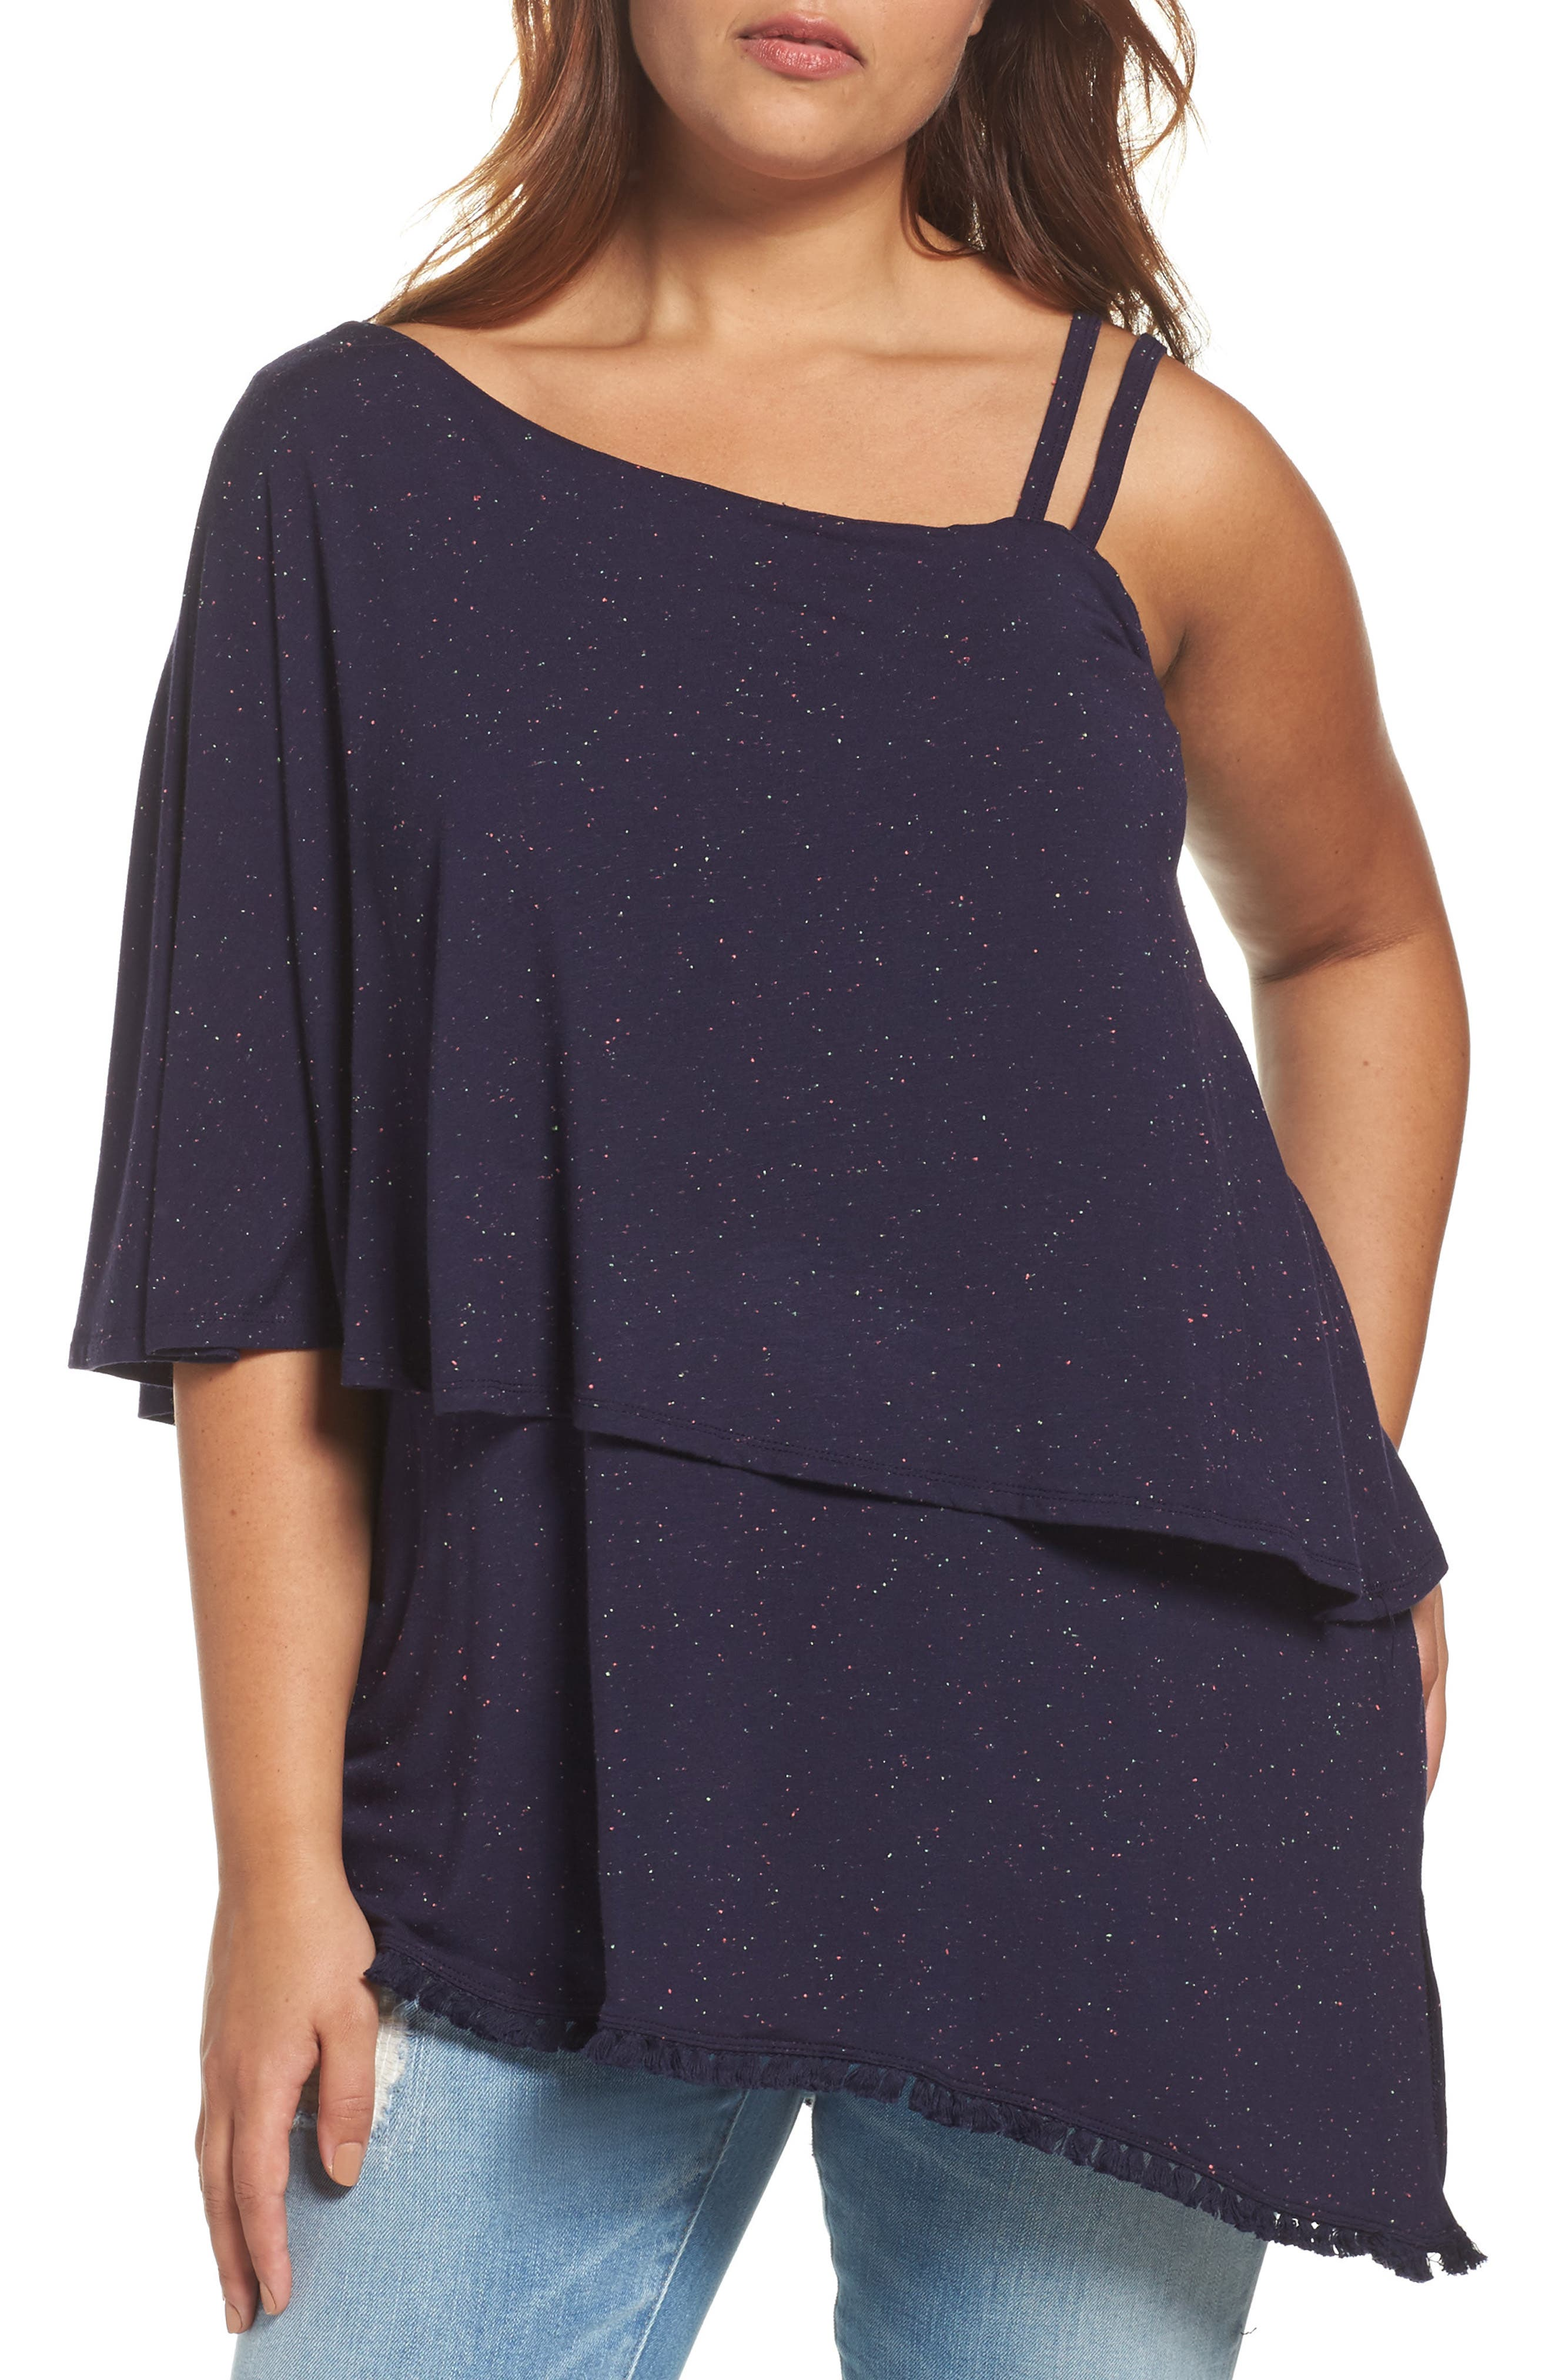 Main Image - Wit & Wisdom One-Shoulder Ruffle Asymmetrical Top (Plus Size) (Nordstrom Exclusive)